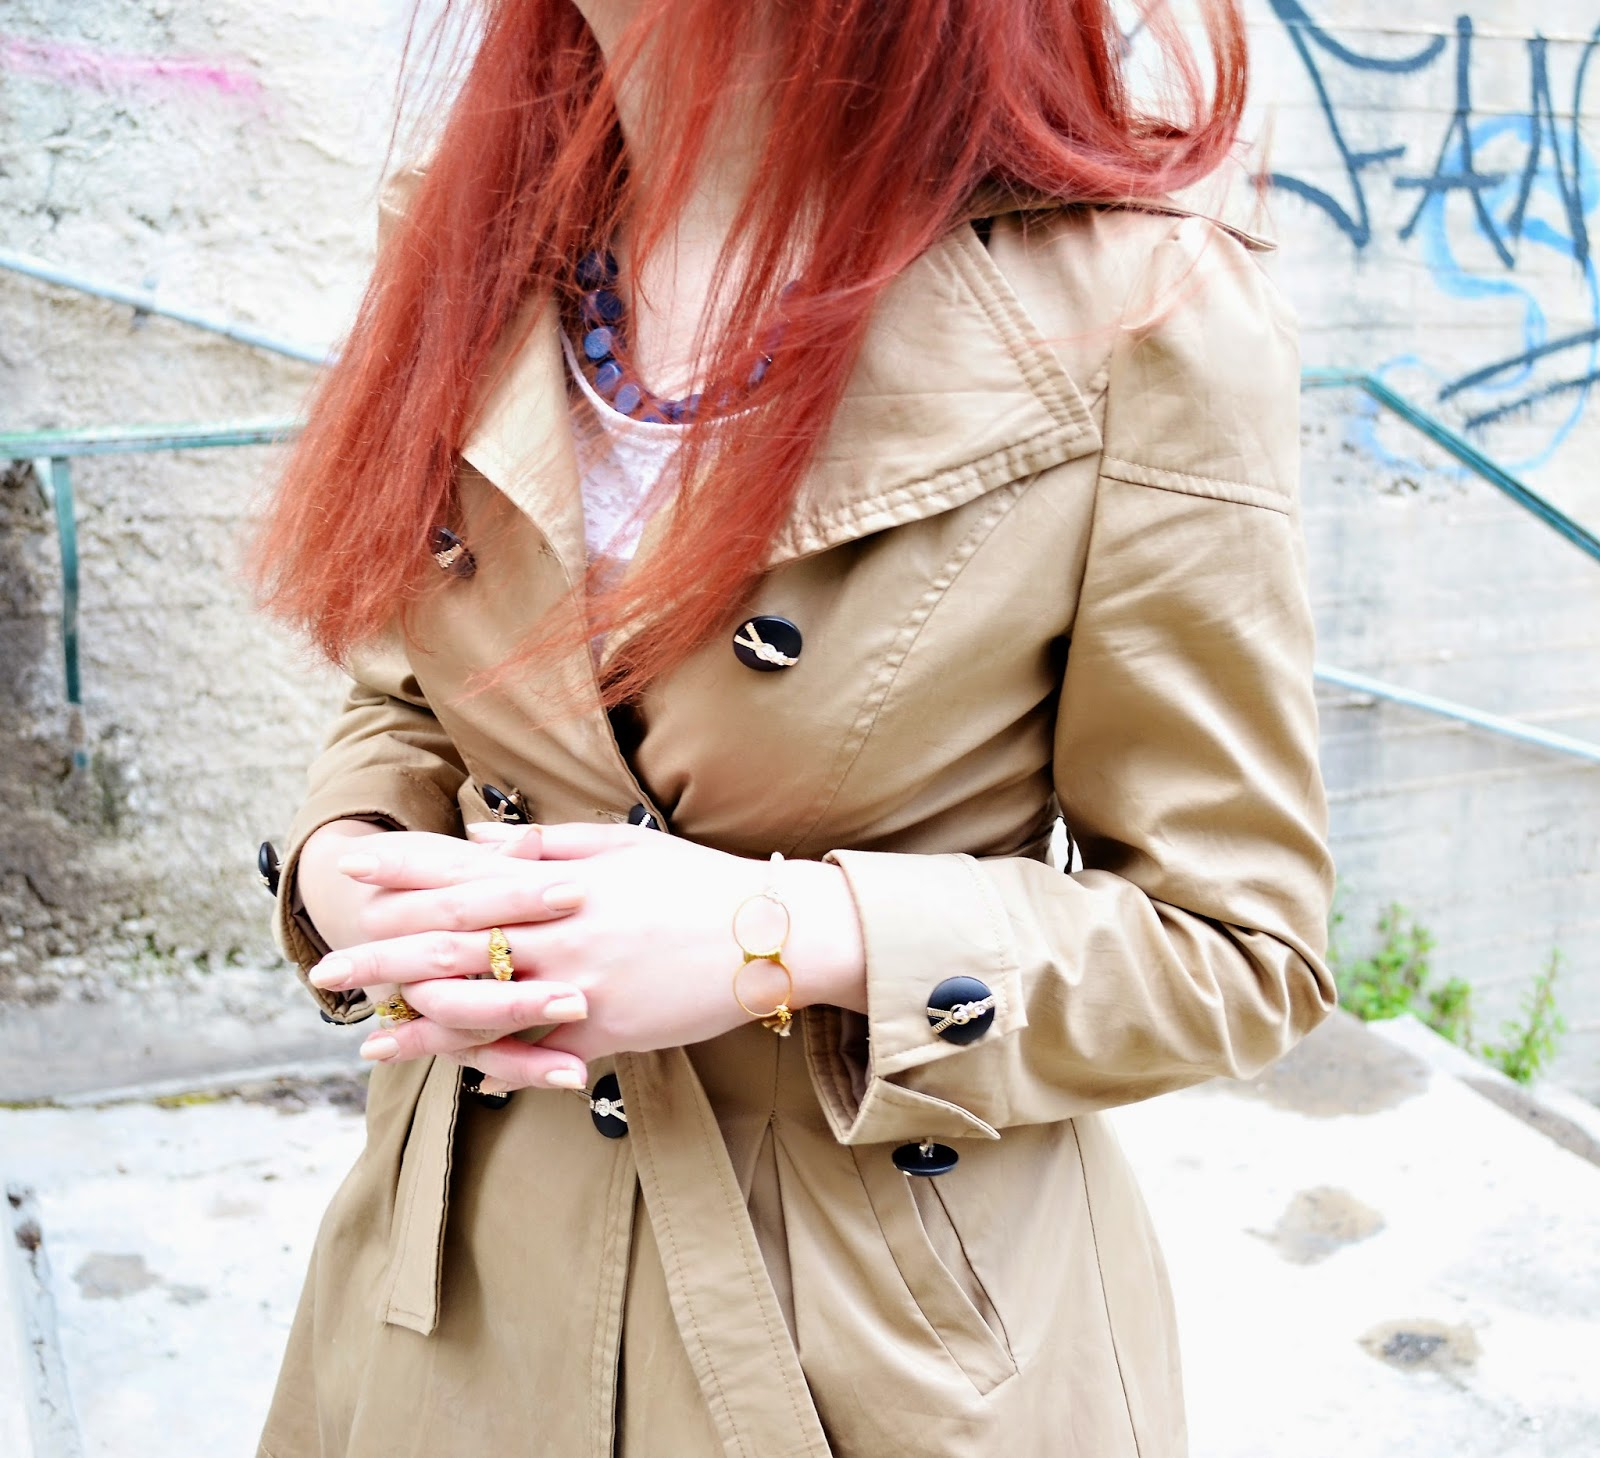 Anna ,Keni,redhead, spotlights on the redhead,fashion,model,blogger, gl handmade, creations, gege, lampraki, jewelry, oasap, review, coat, beige, spring, 2014, blue, pink